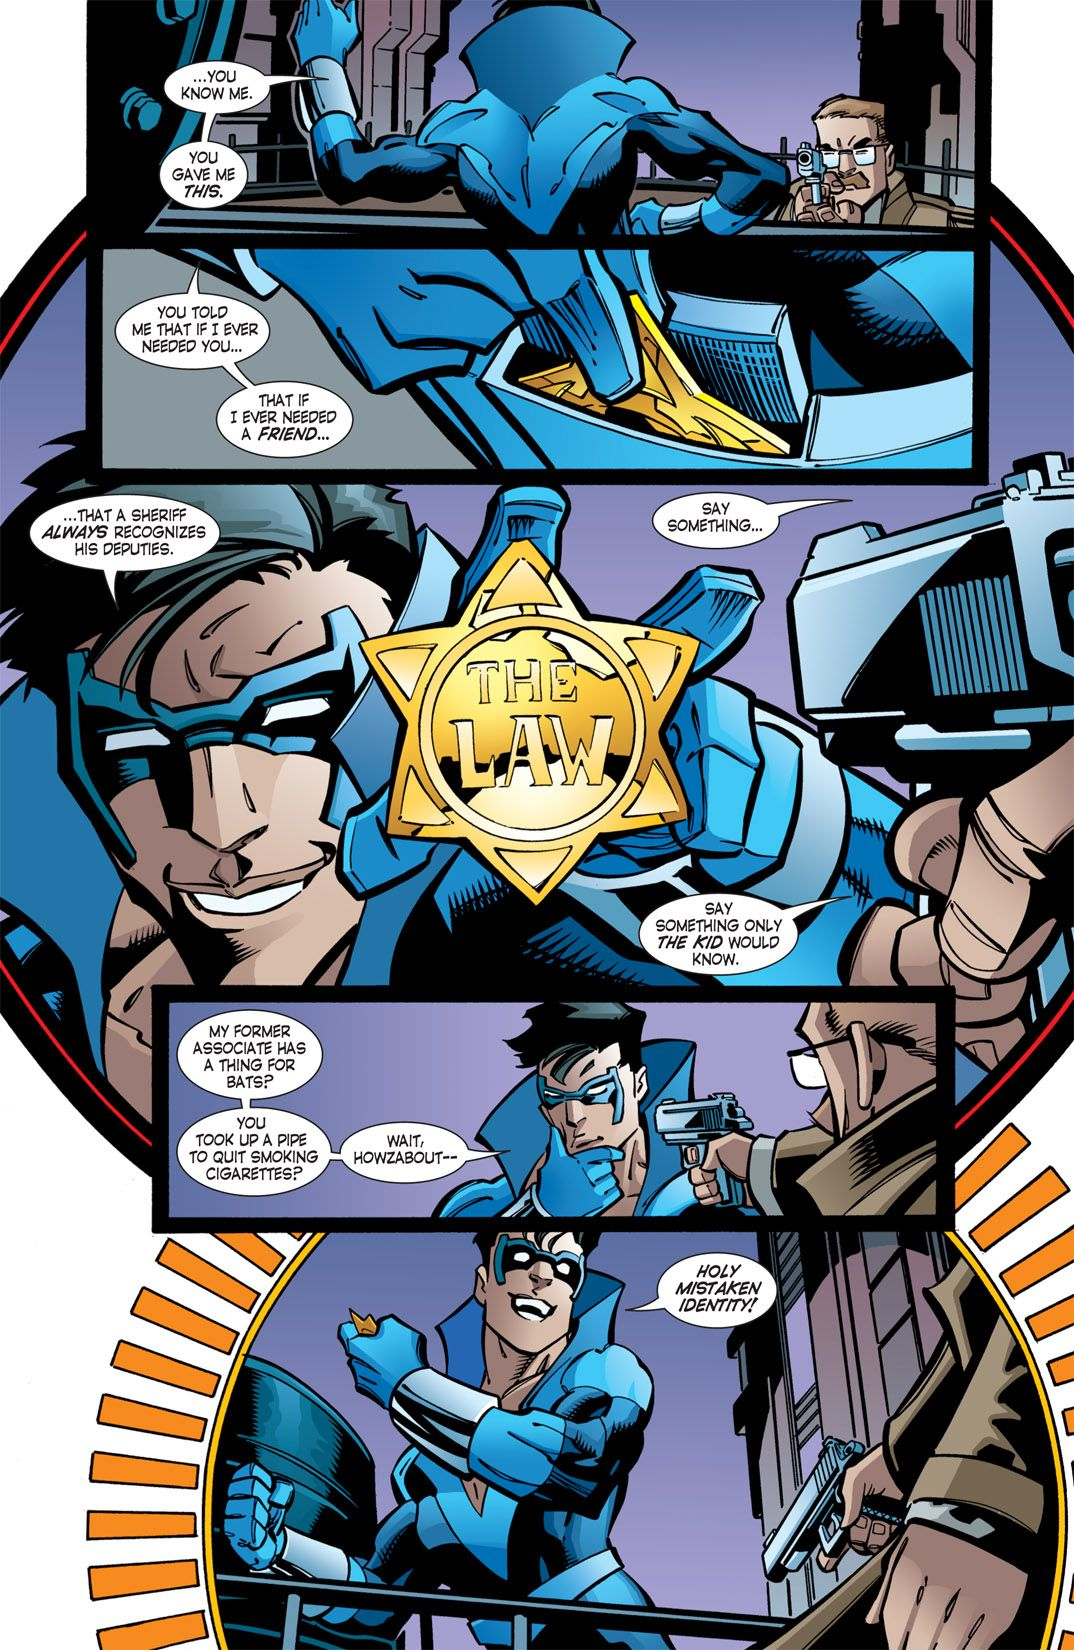 Nightwing Year 1 Holy Mistaken Identity That Line Is Wonderfuleven With The Terrible Costume